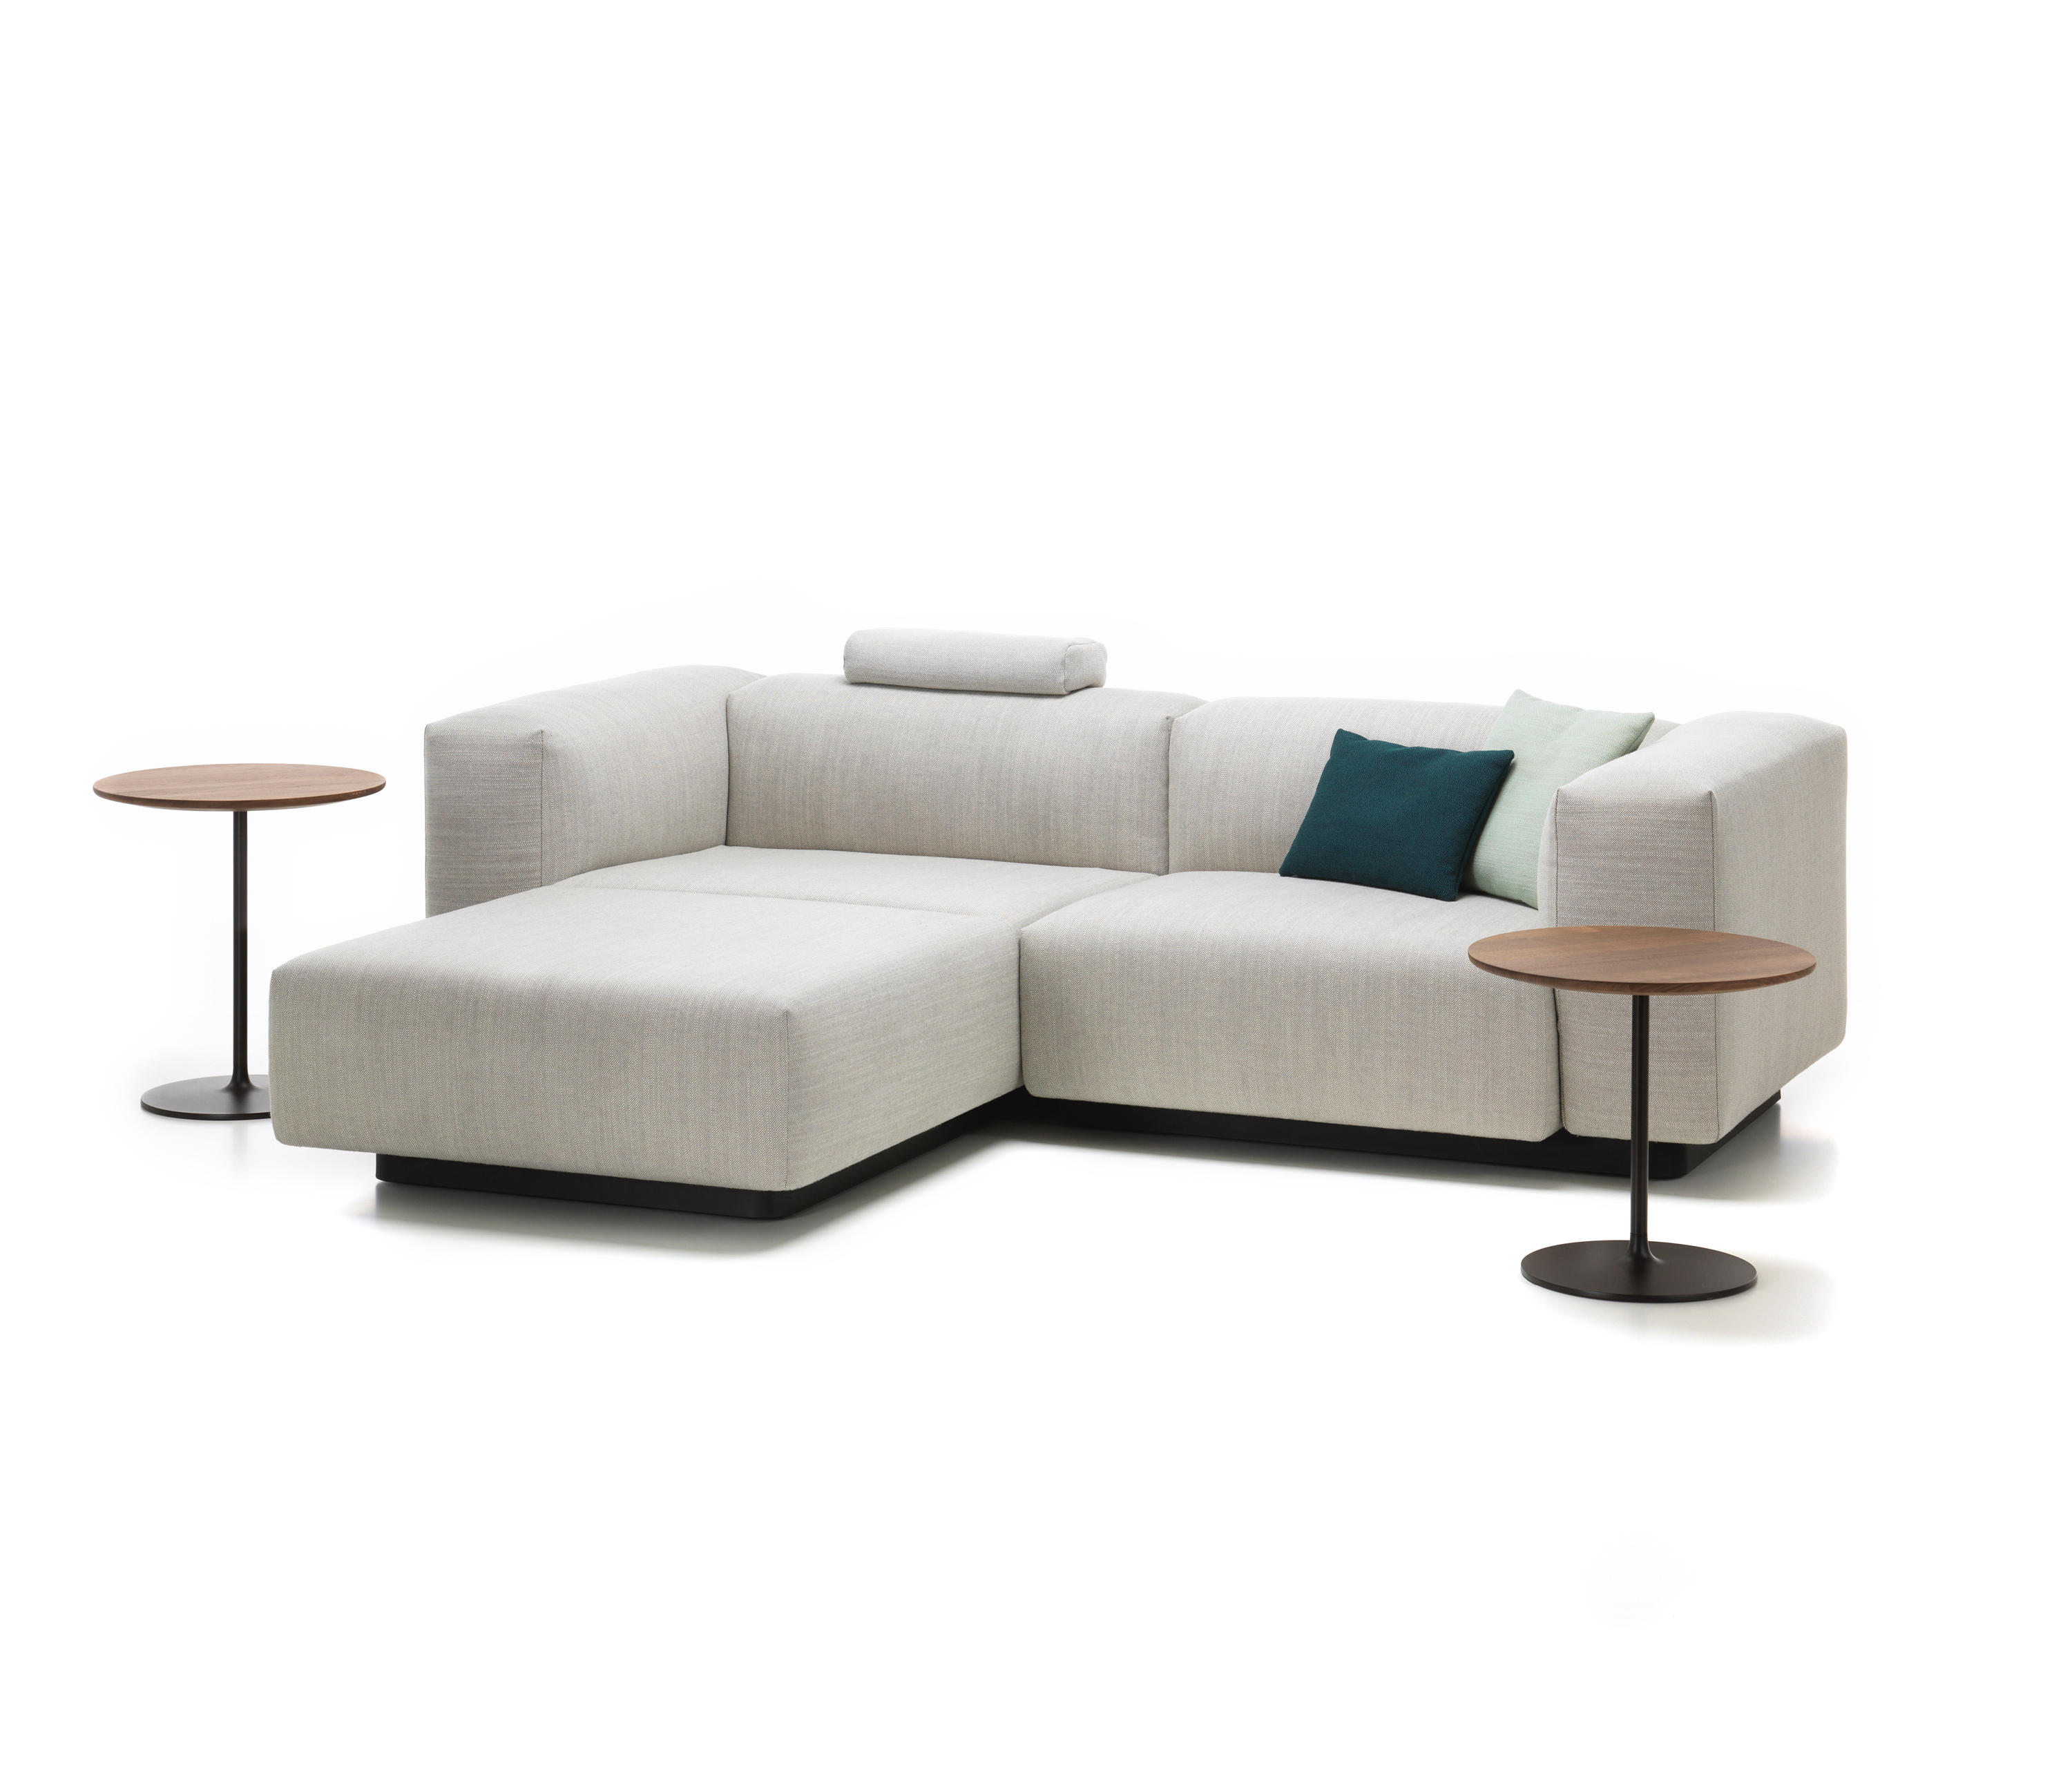 Chaise Vitra Soft Modular Sofa 2 Seater Chaise Longue Sofas From Vitra